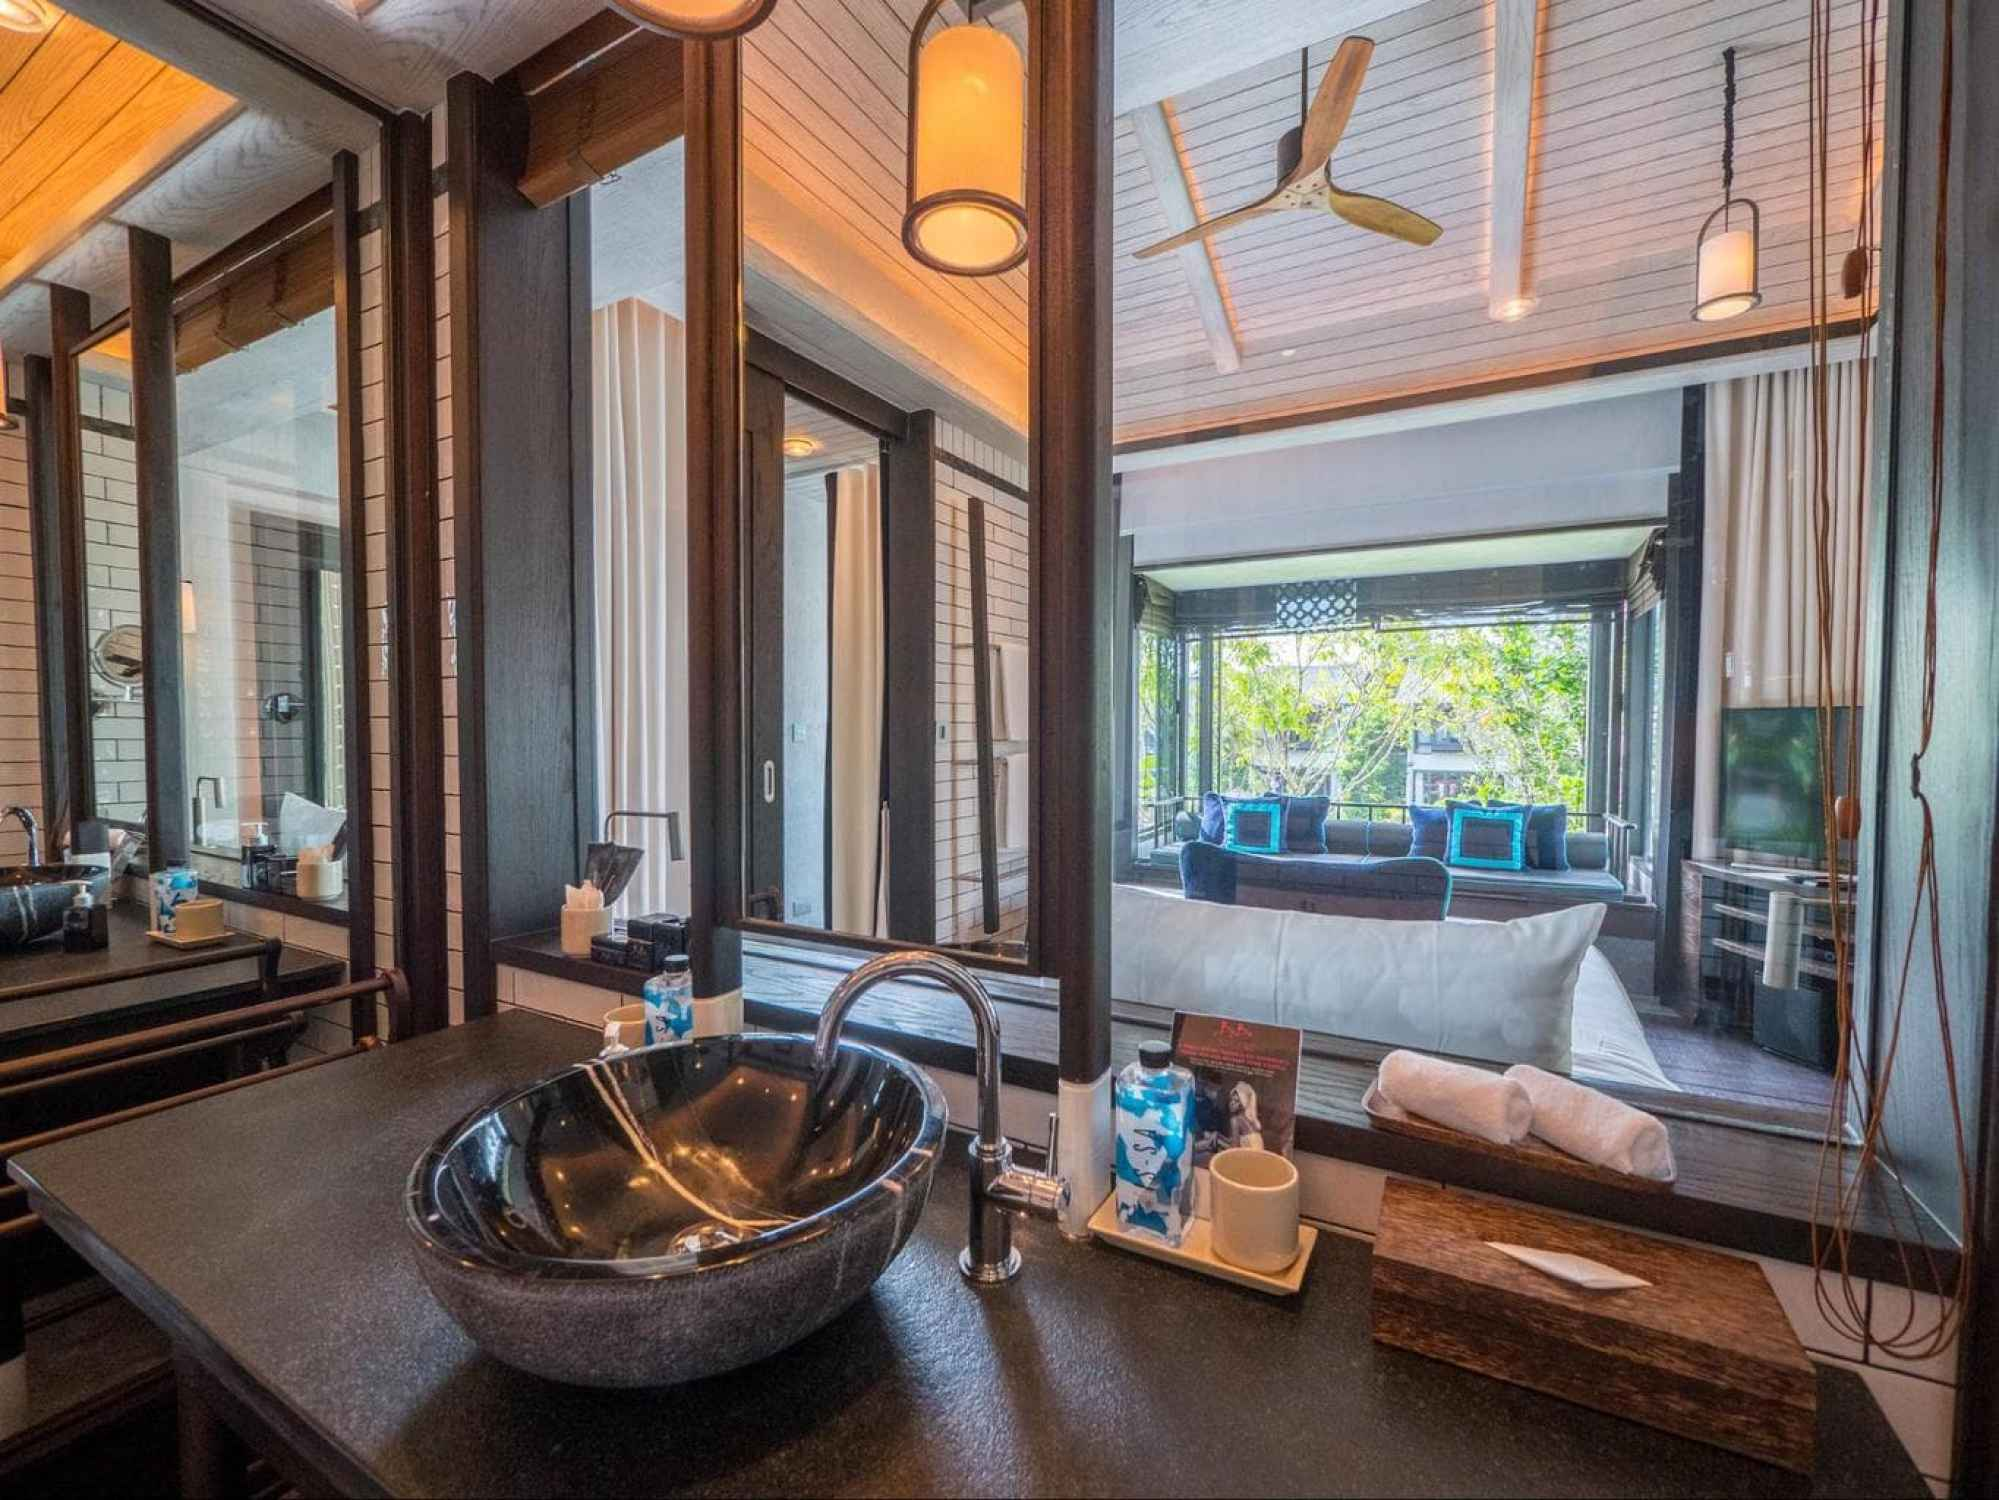 The view from the bathroom of the gabana at Baba Beach Club Phuket